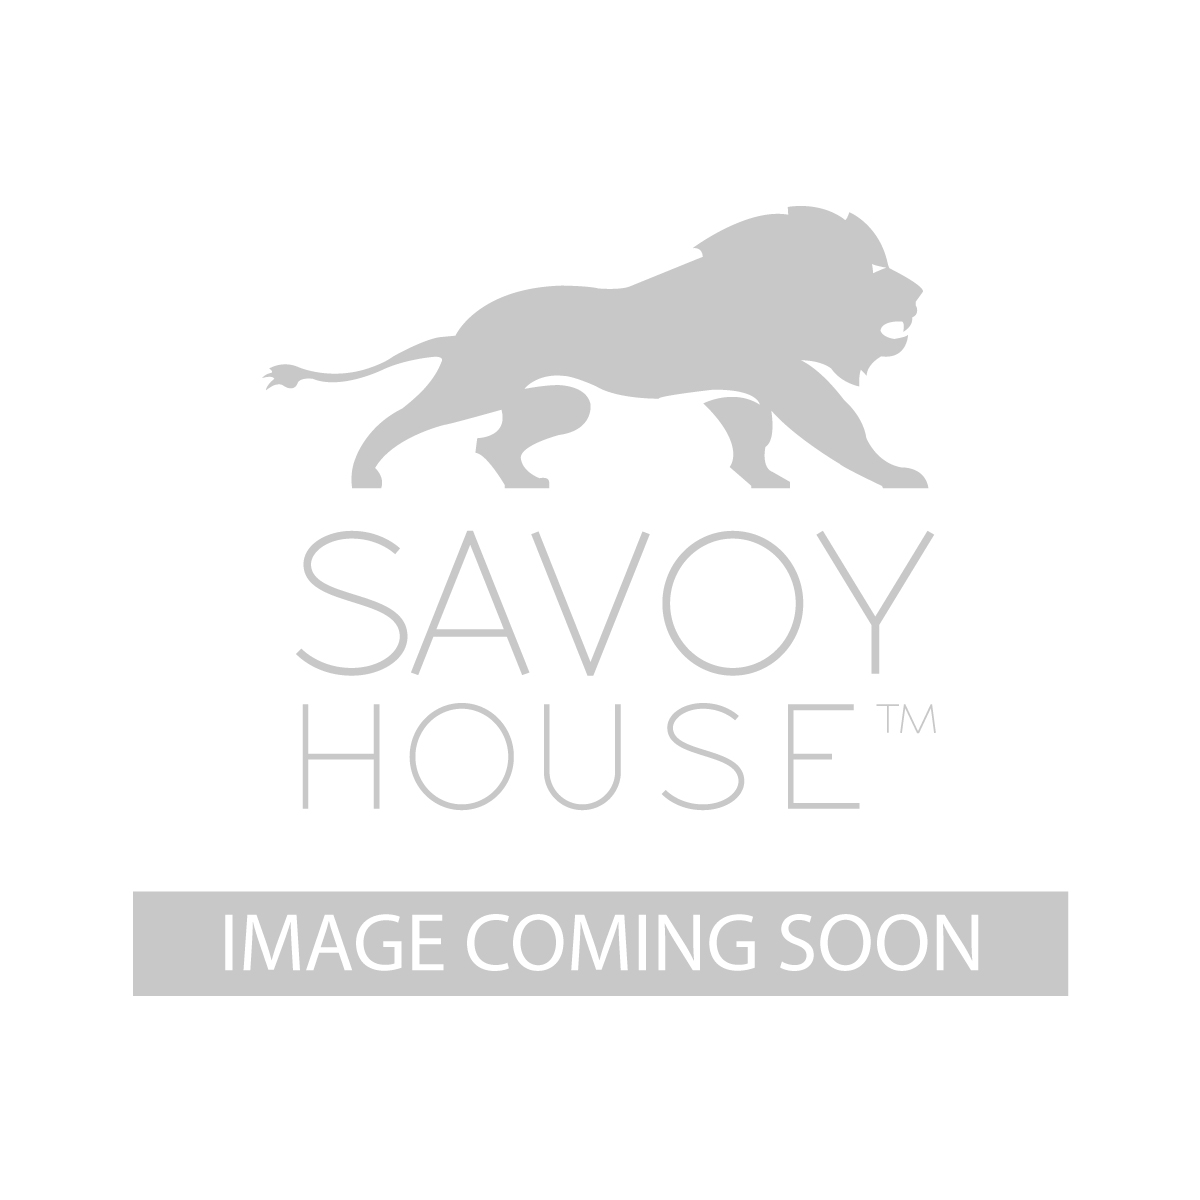 7 9809 5 28 tierney 5 light pendant by savoy house for Savoy house com